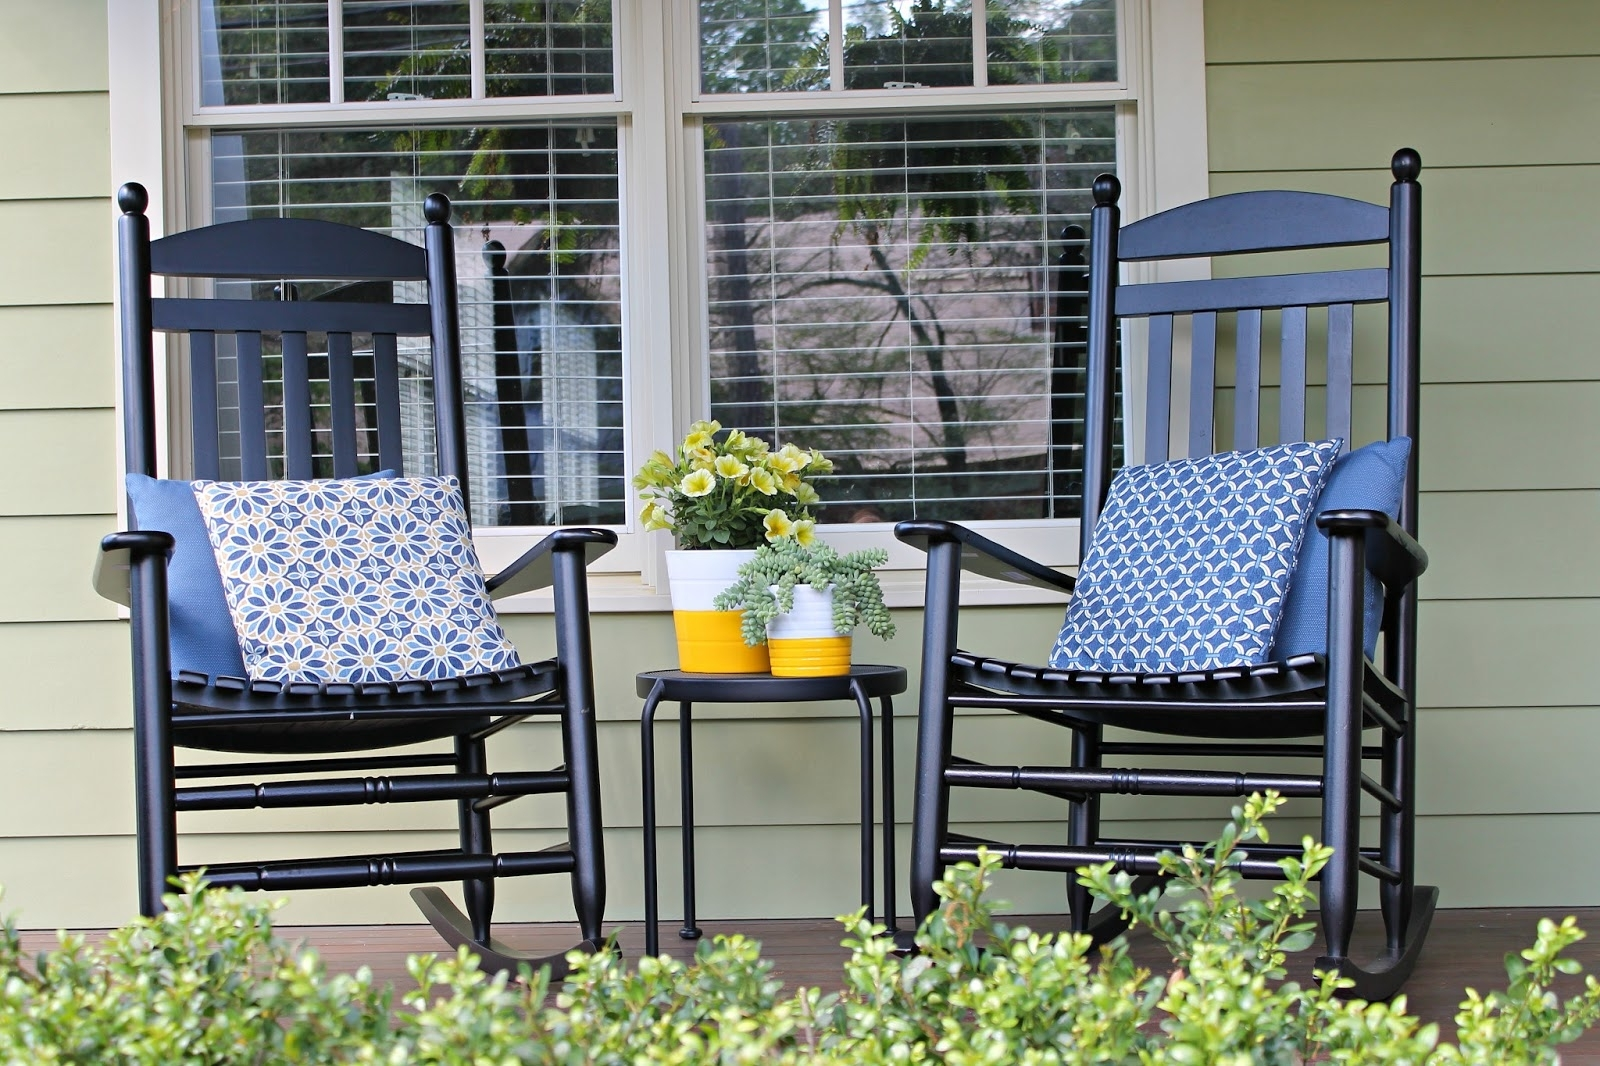 The Iconic Style Of Rocking Chair For Chairs Front Porch Design 8 With 2019 Rocking Chairs For Porch (View 12 of 20)